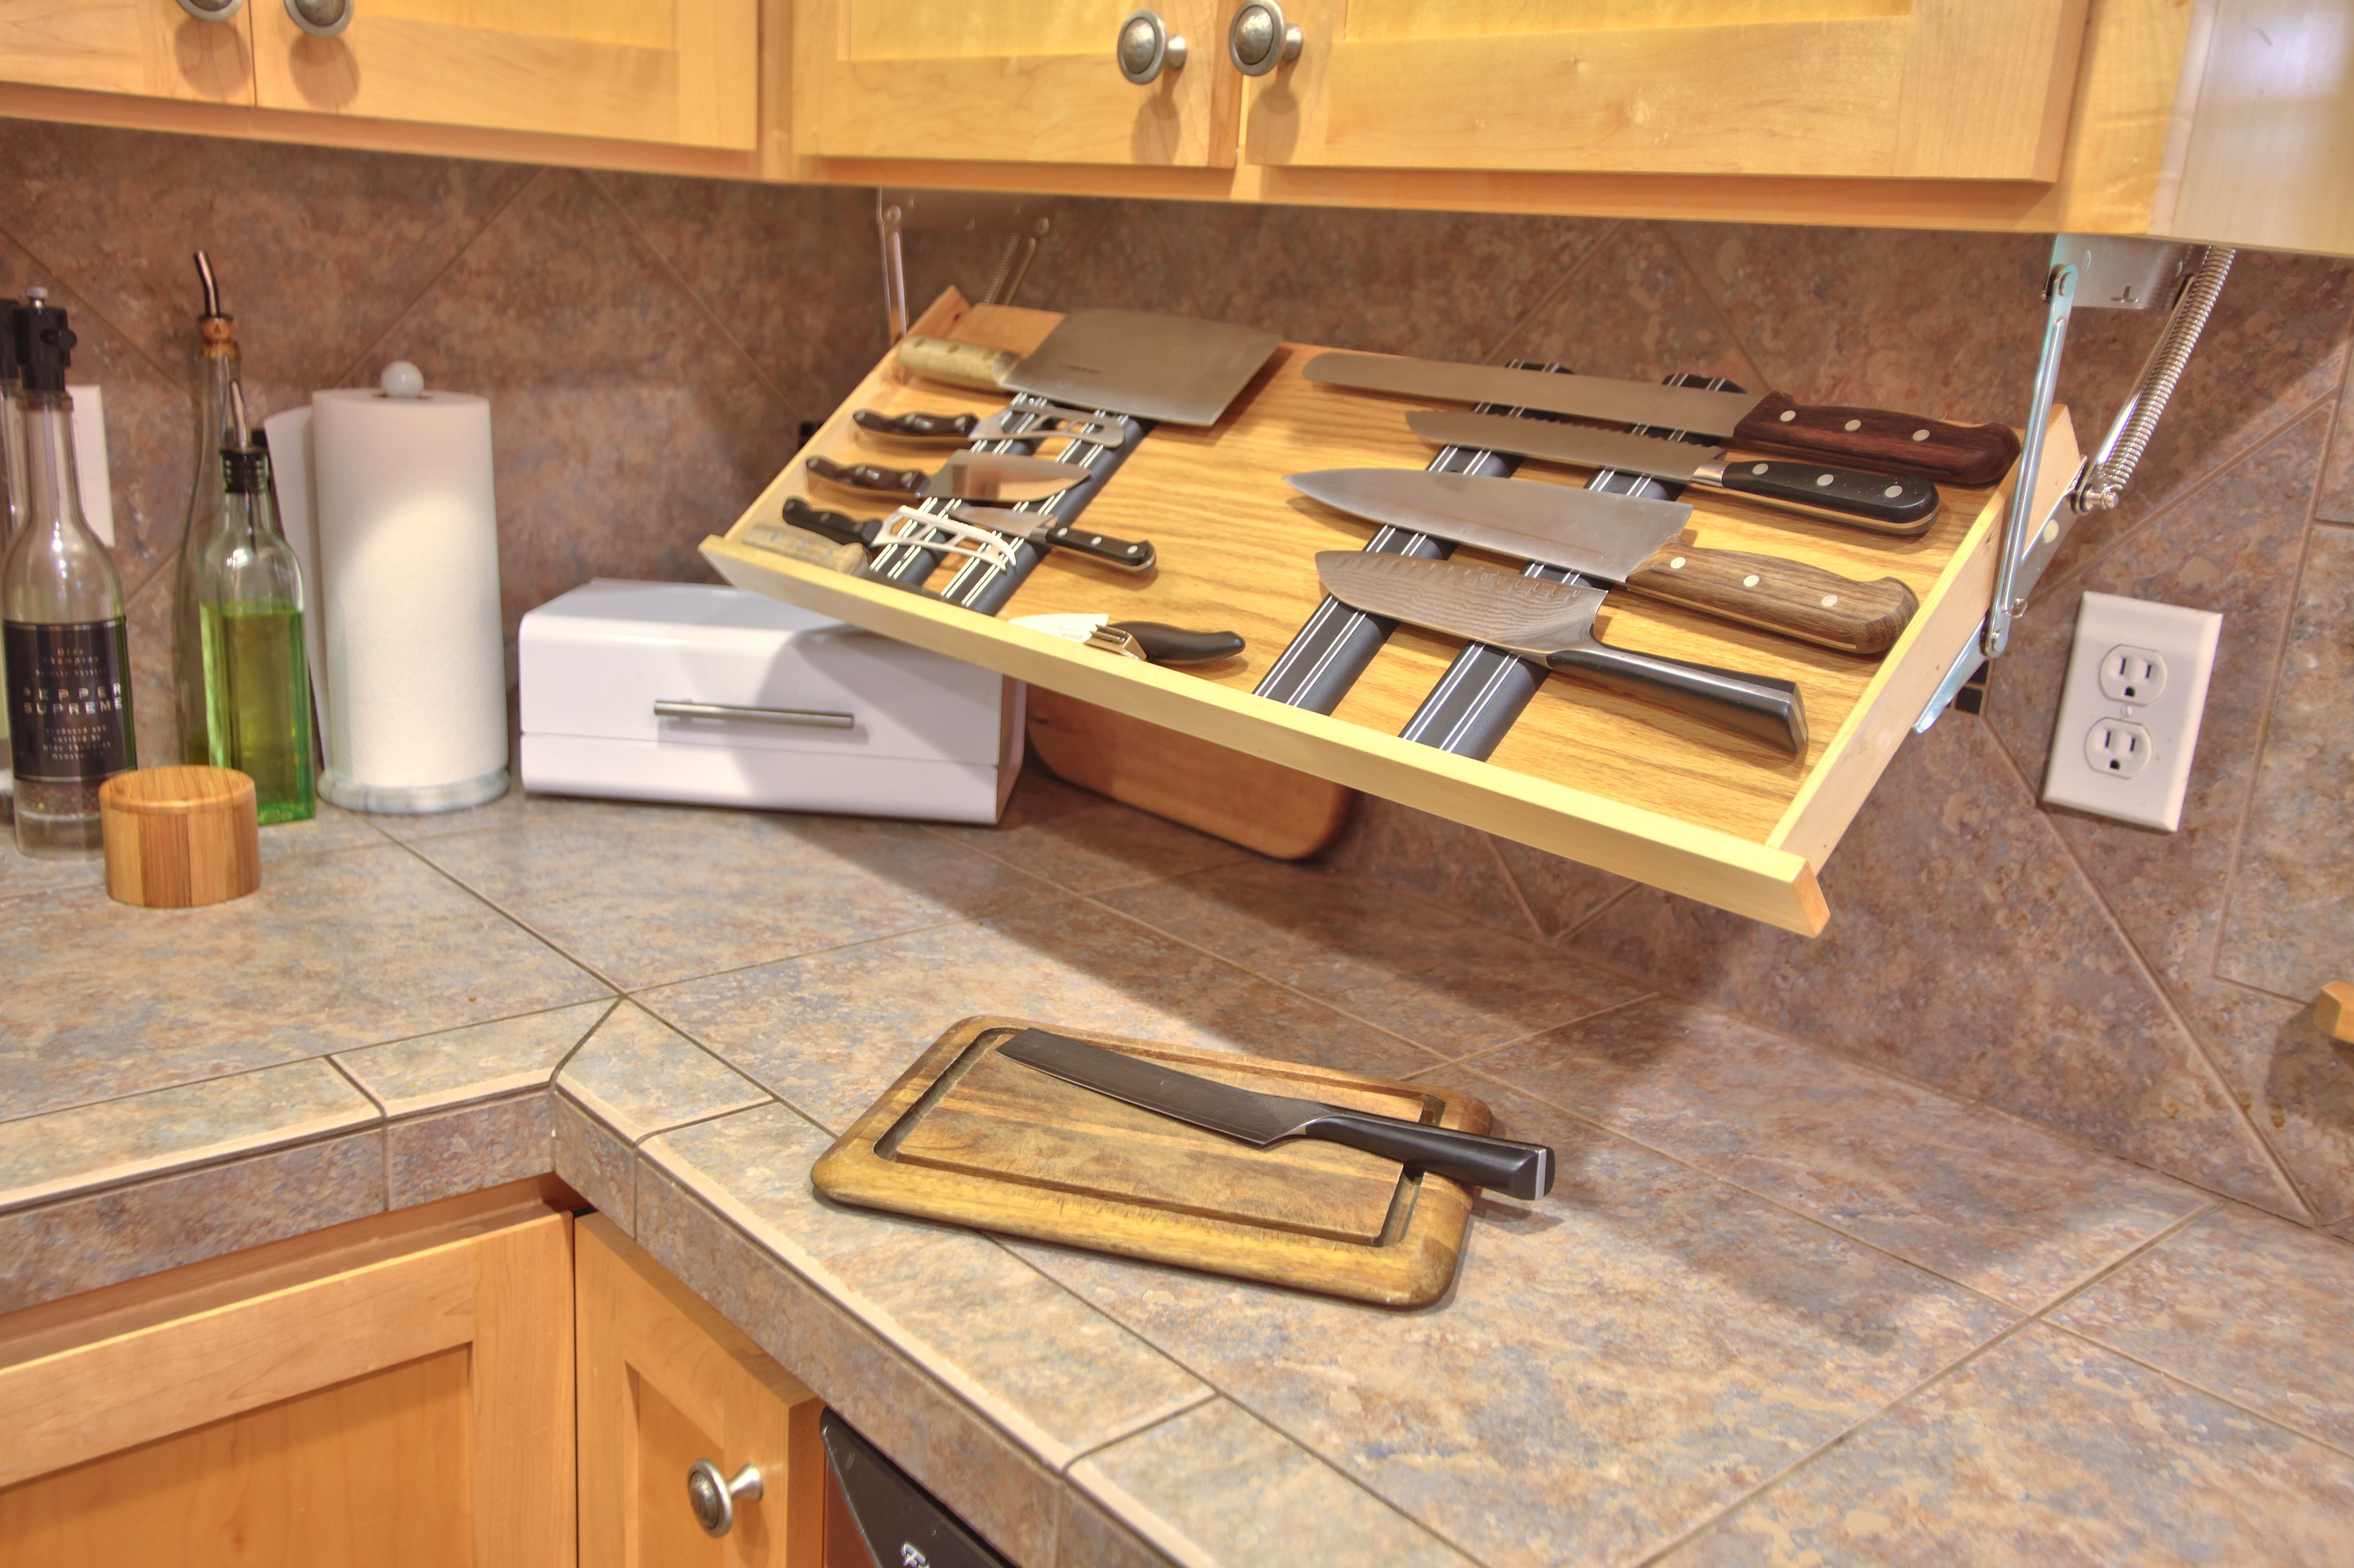 Get the knife out Under counter drop down knife storage